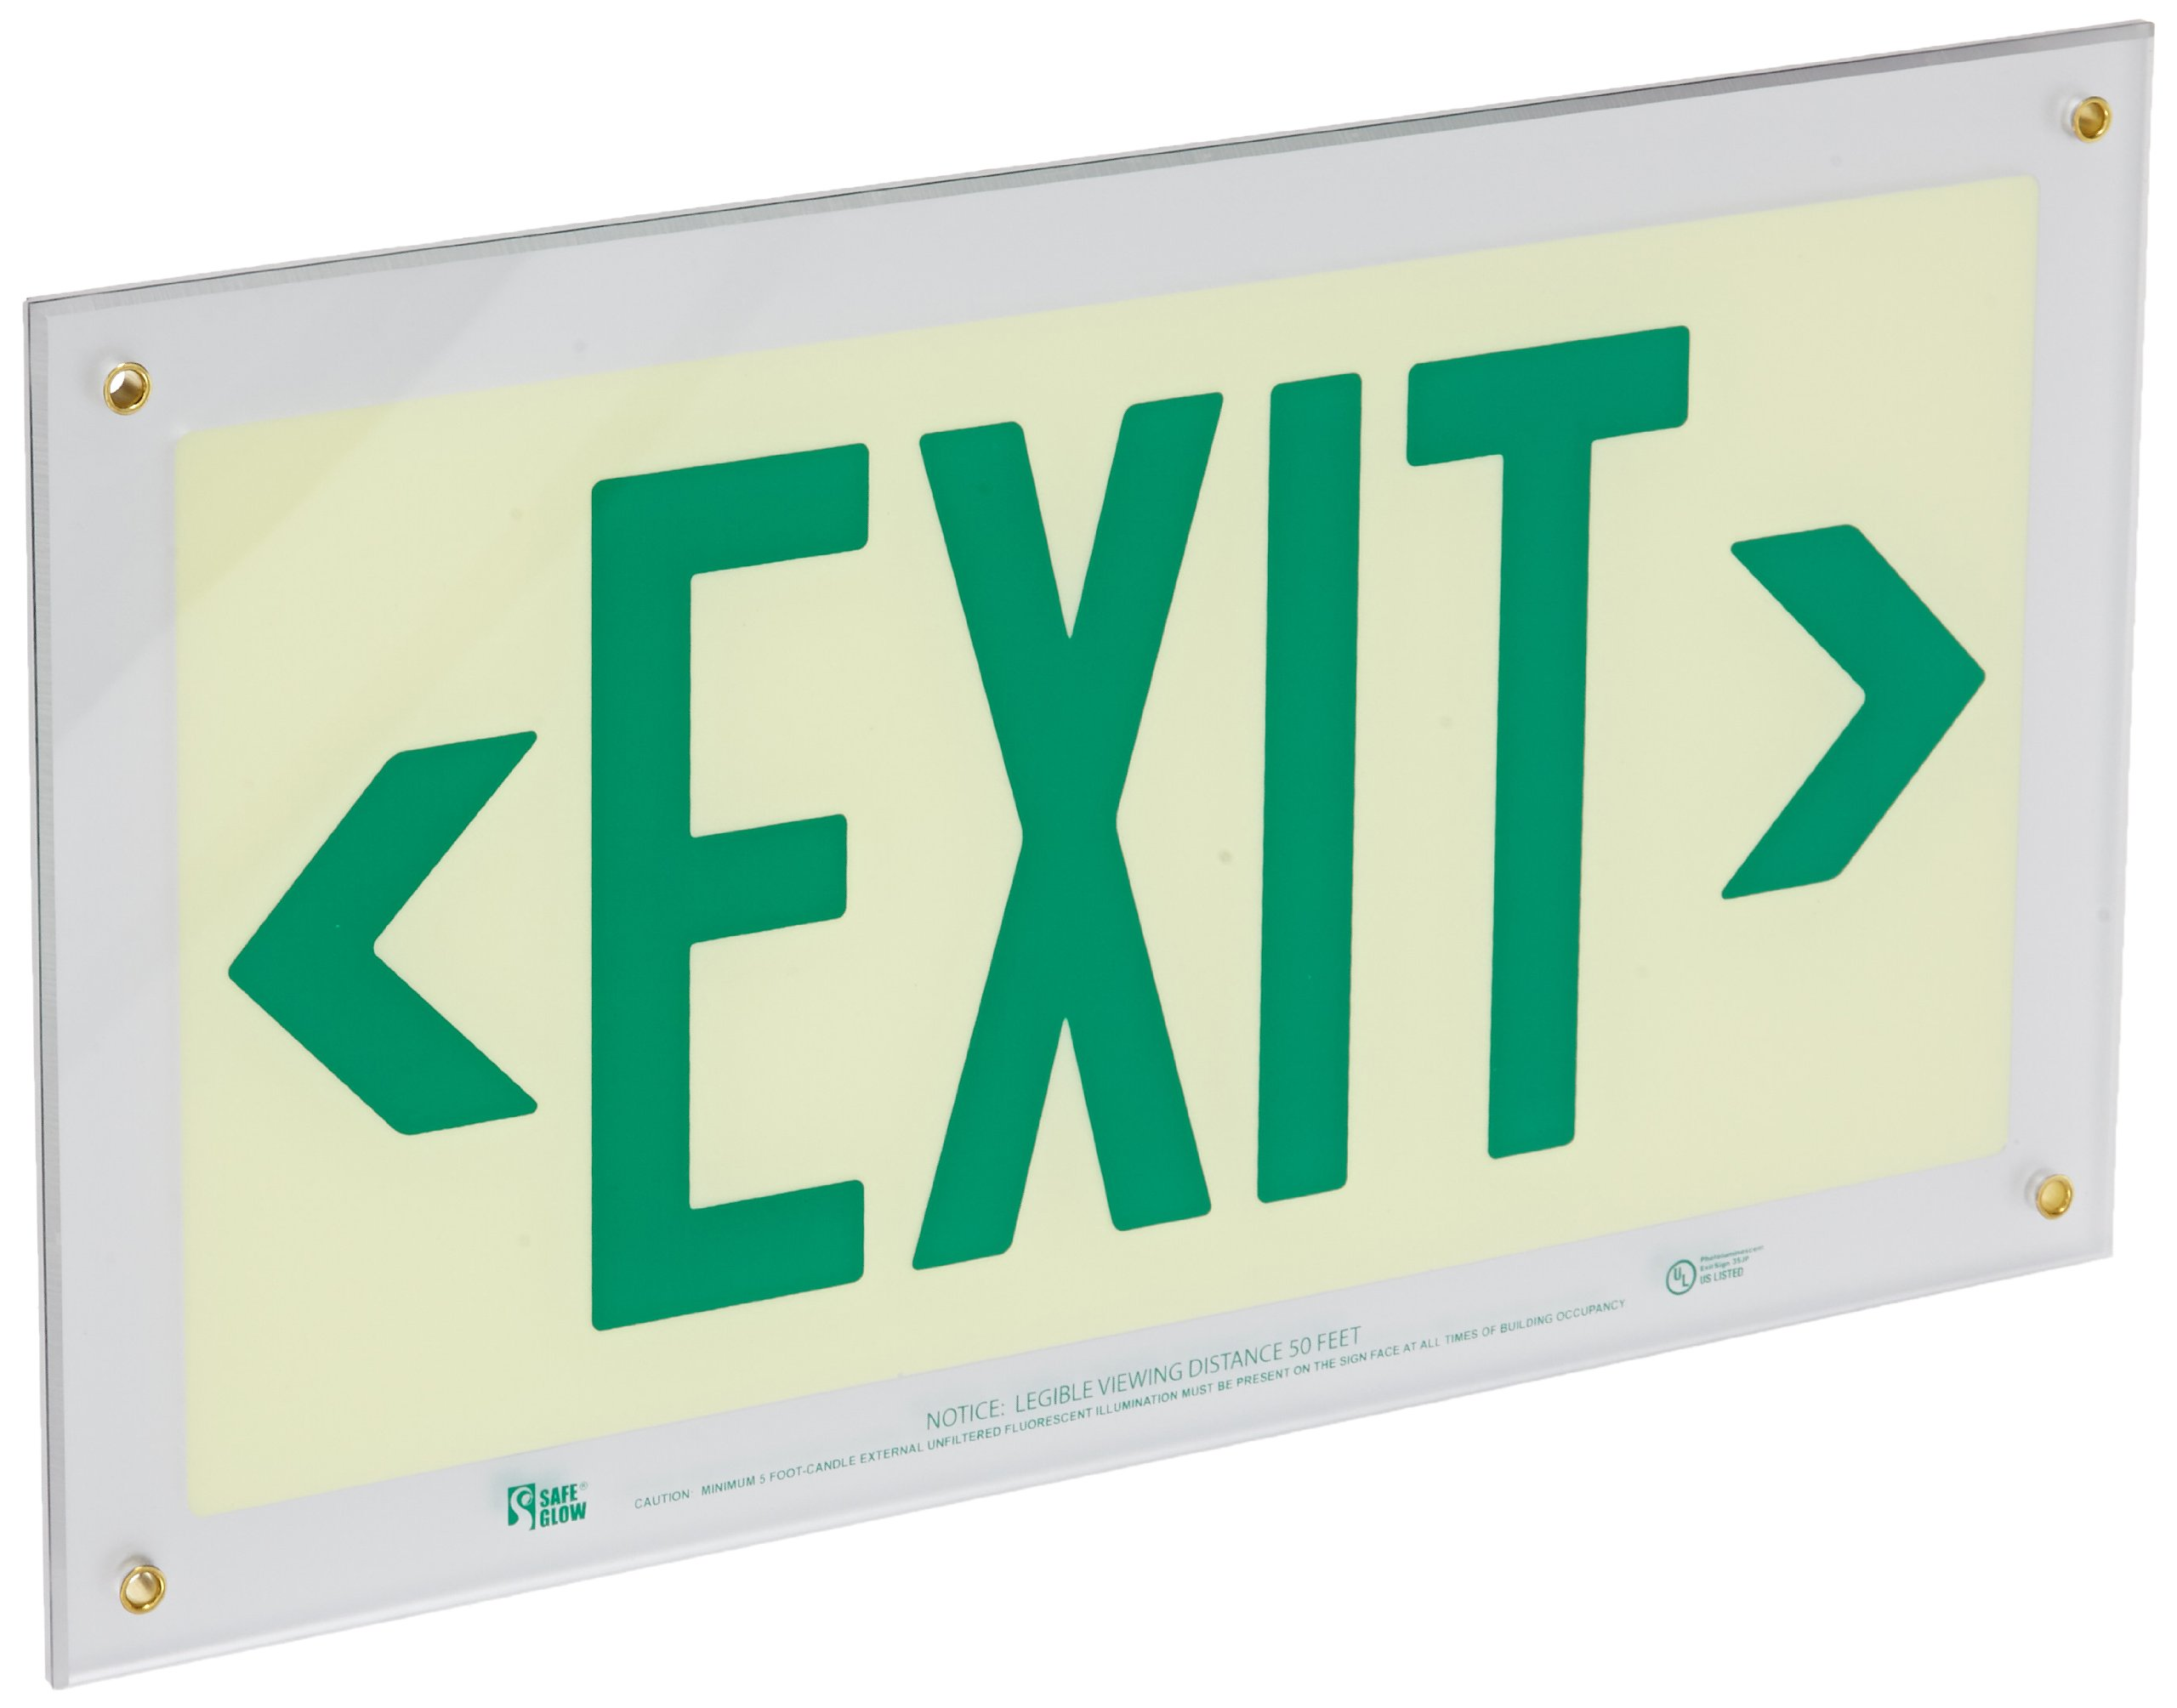 Safe Glow Photoluminescent Exit Sign, ''EXIT'' with Left and Right Arrows Symbol, 16-29/32'' Length x 9-1/2'' Width x 1/4 '' Height, Wall Mount (Pack of 1)